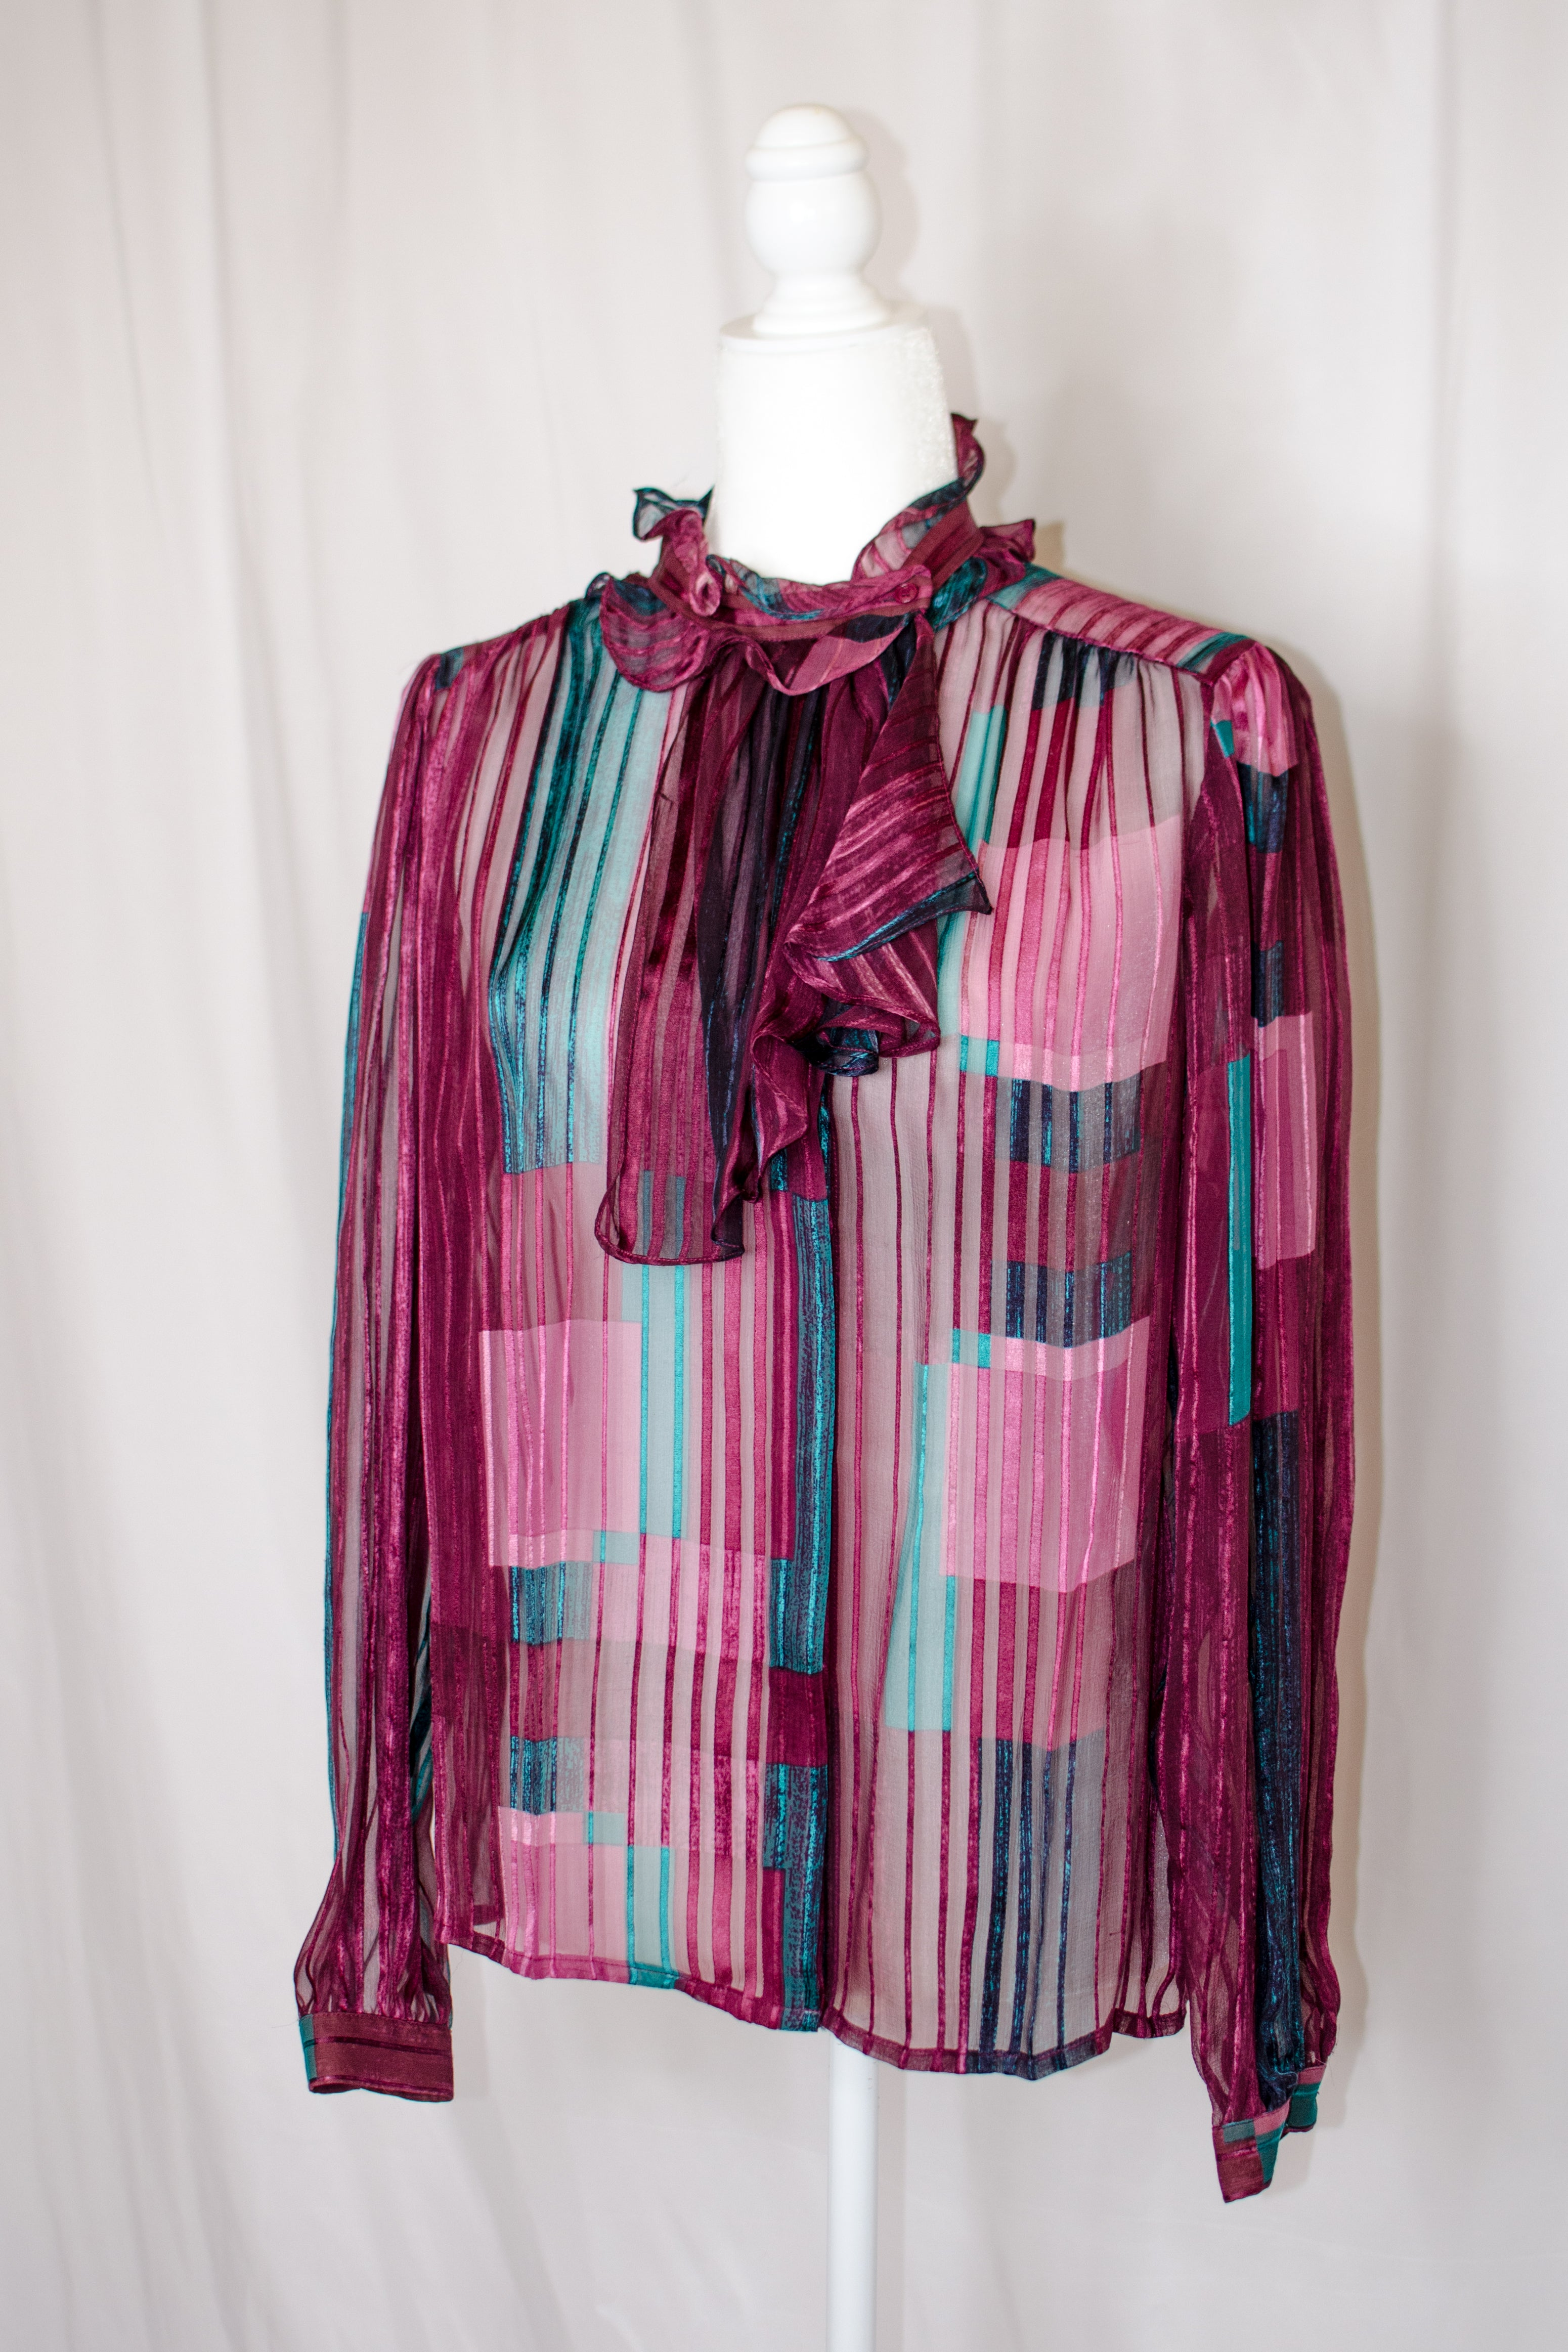 Vintage 70s Purple & Teal Ascot Collar Shirt / S